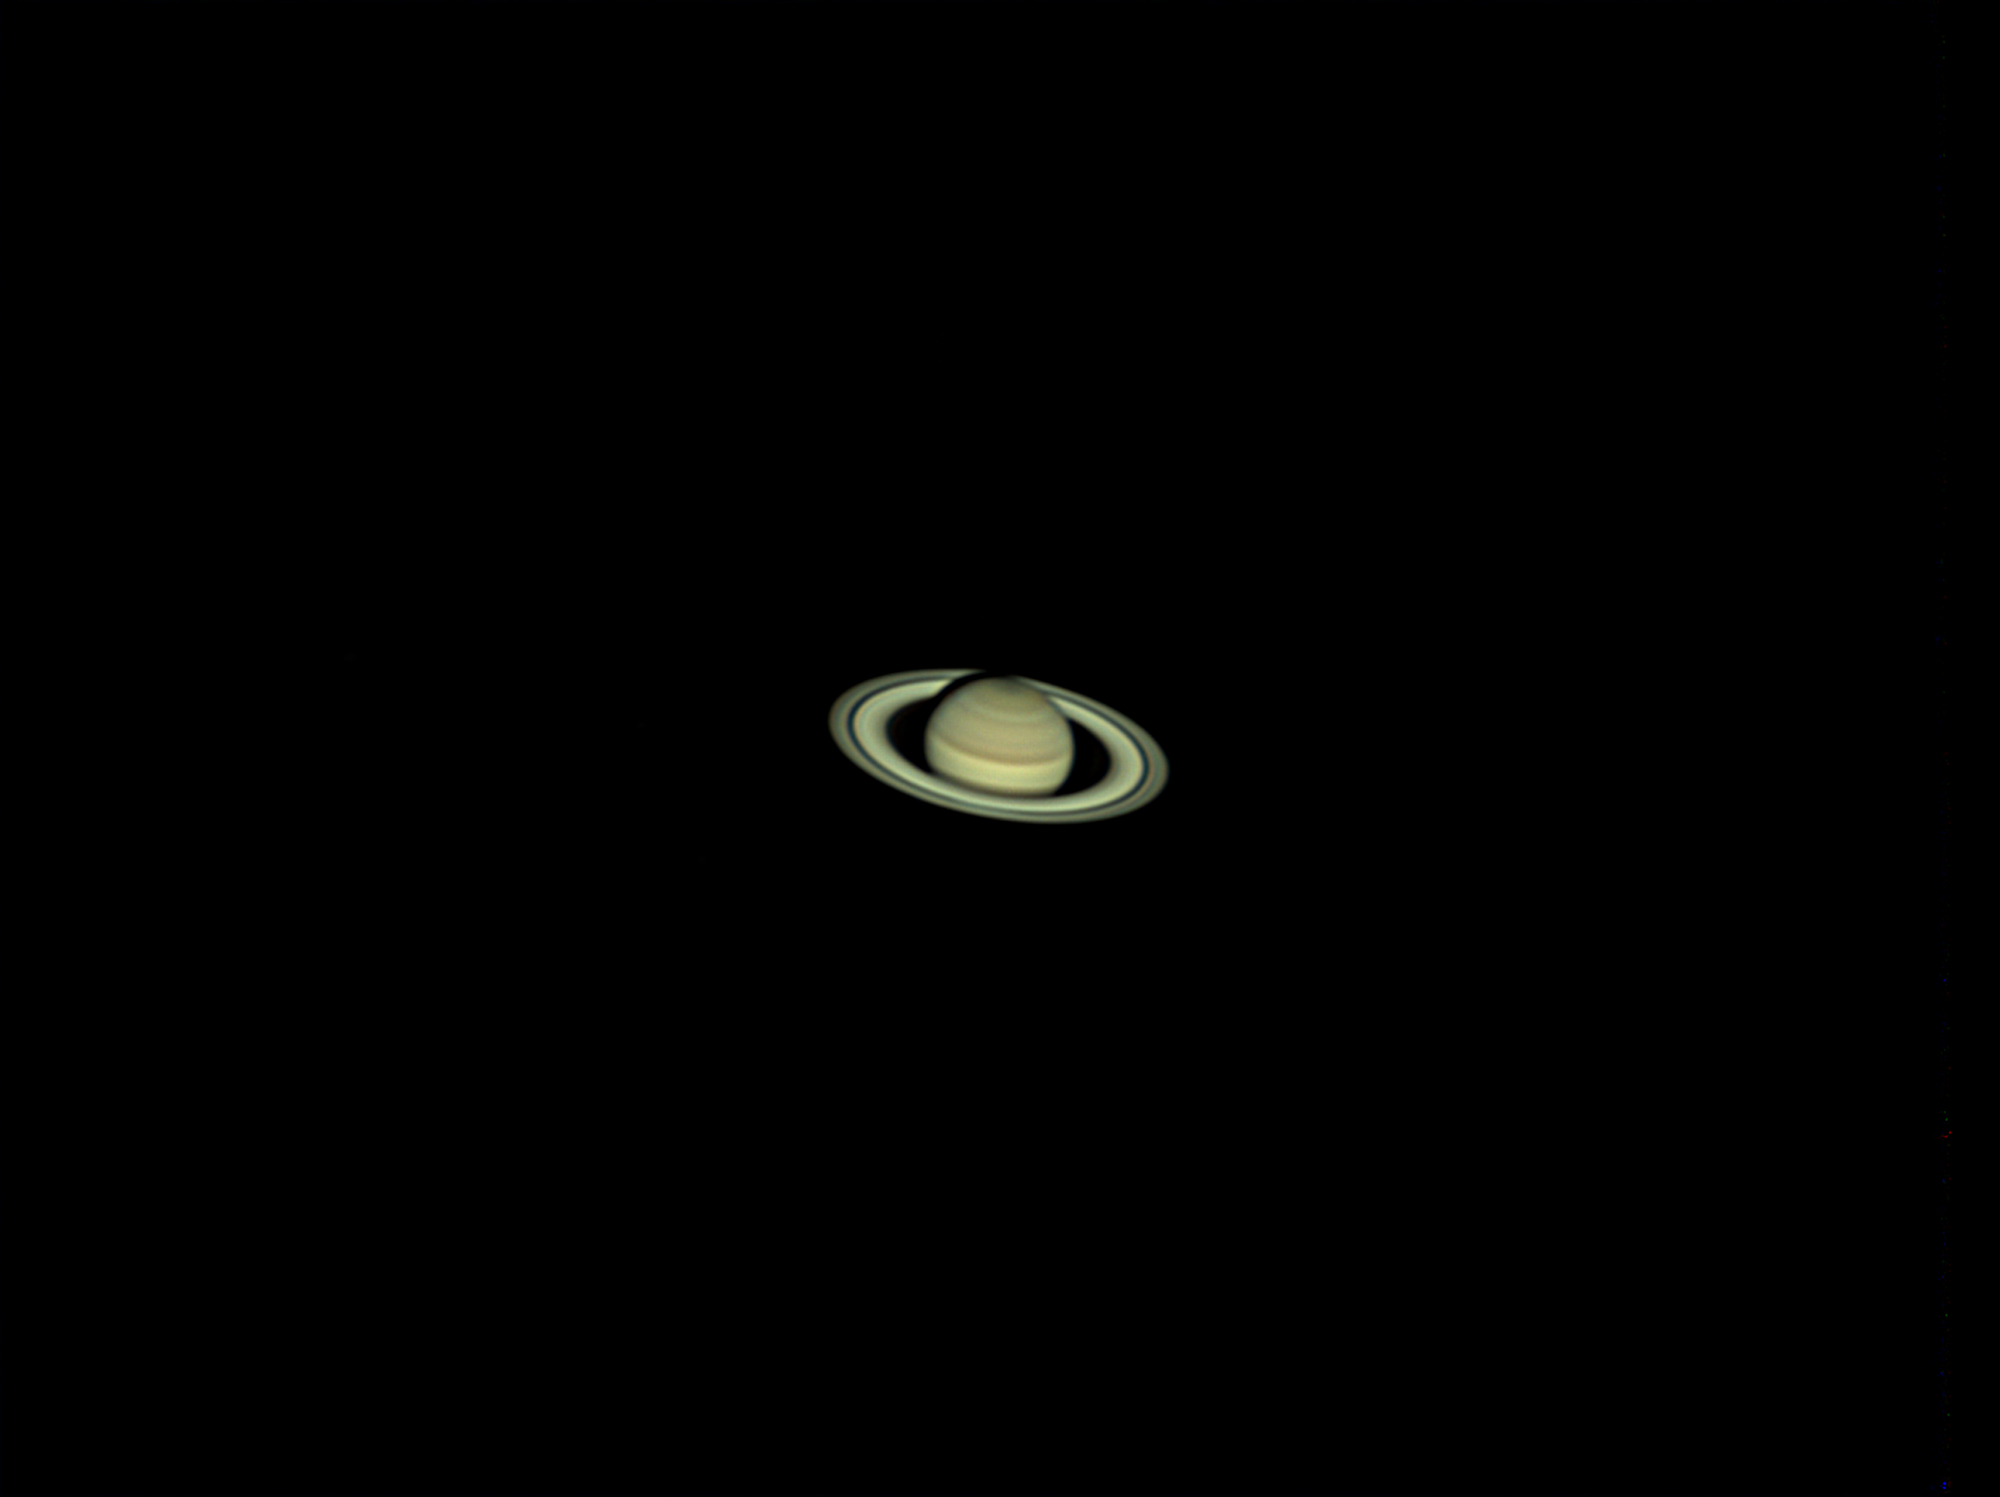 Saturn0309.thumb.png.01969092a3332475304c6ffc0a9ae2c2.png